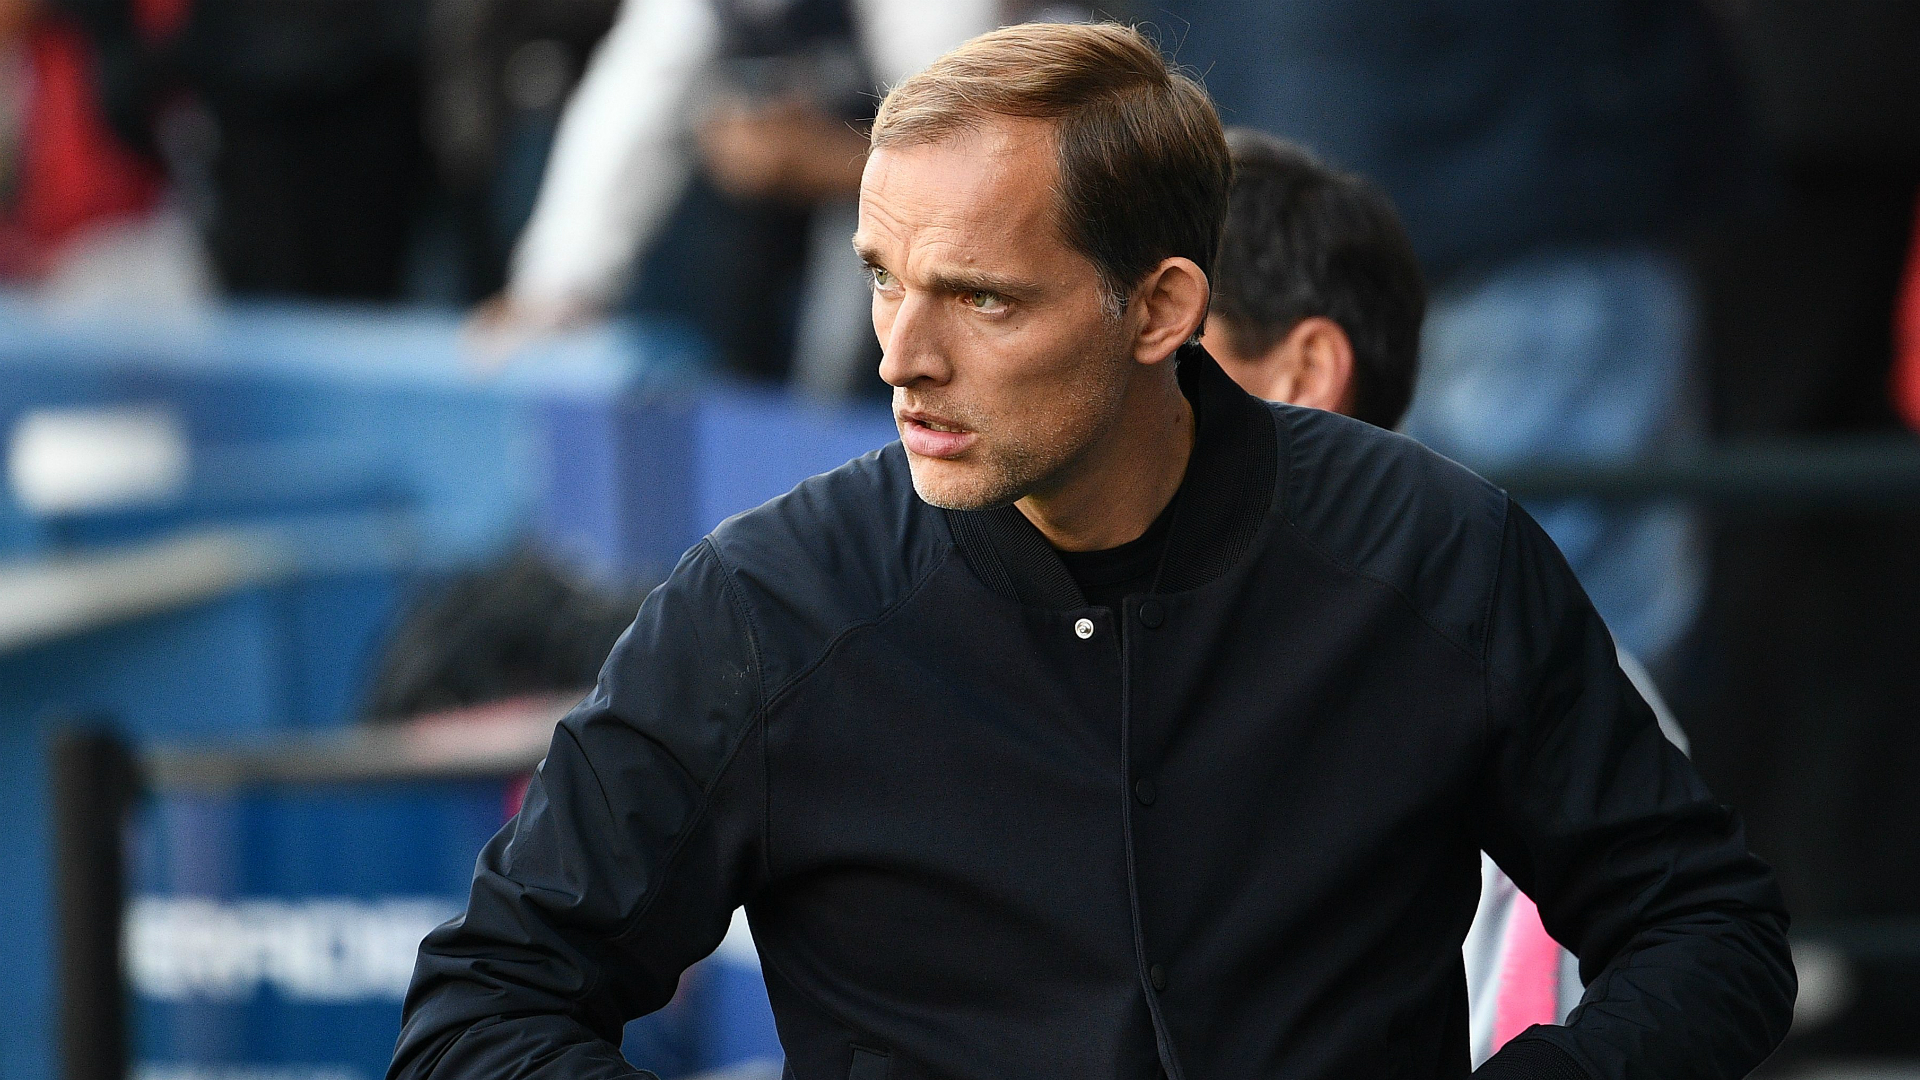 Paris Saint-Germain head coach Thomas Tuchel was asked about the club's transfer plans following Saturday's Ligue 1 victory.